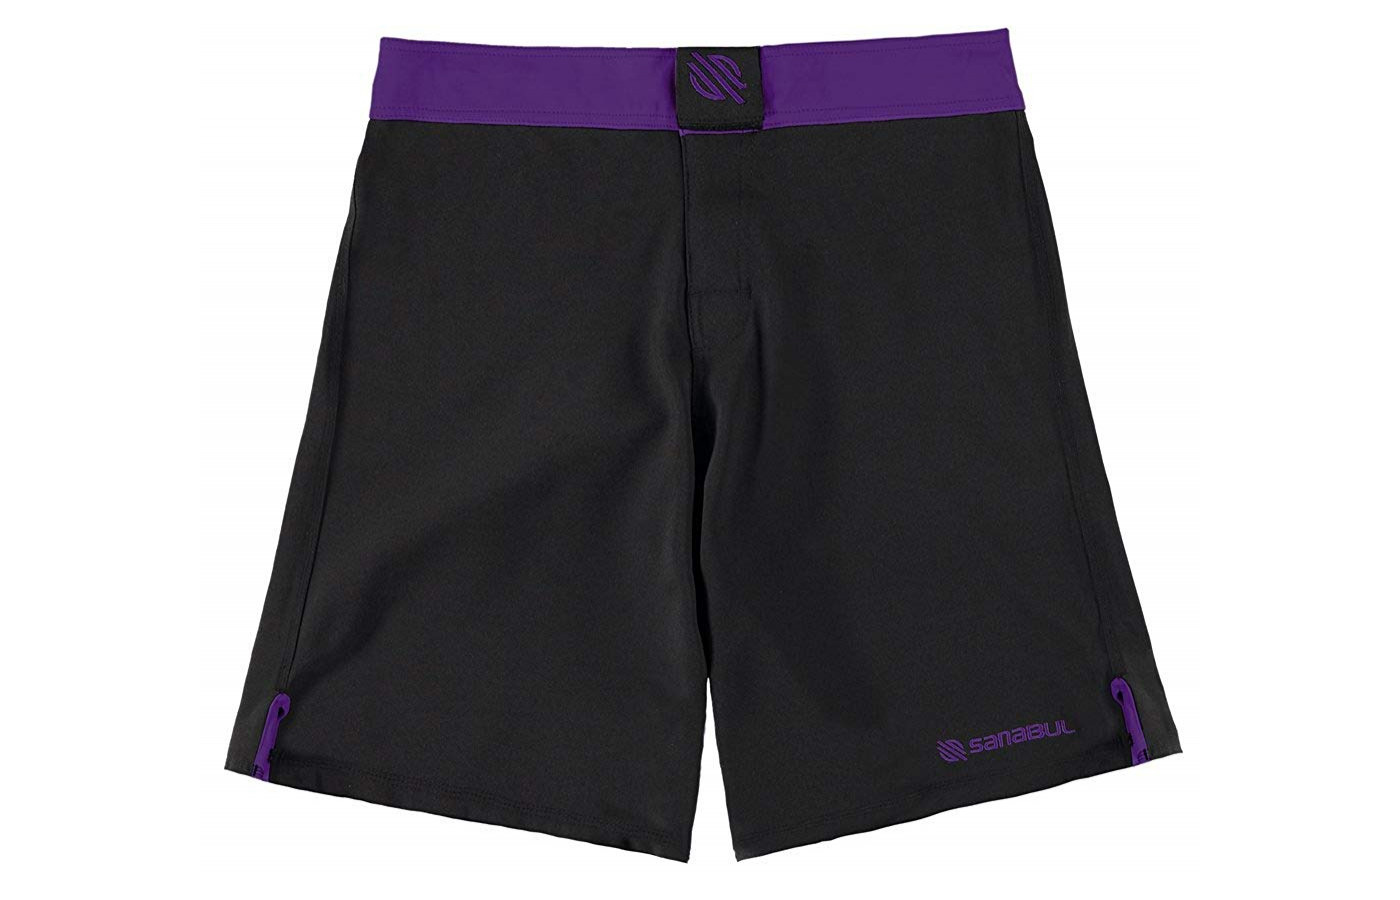 sanabul trunks purple flat